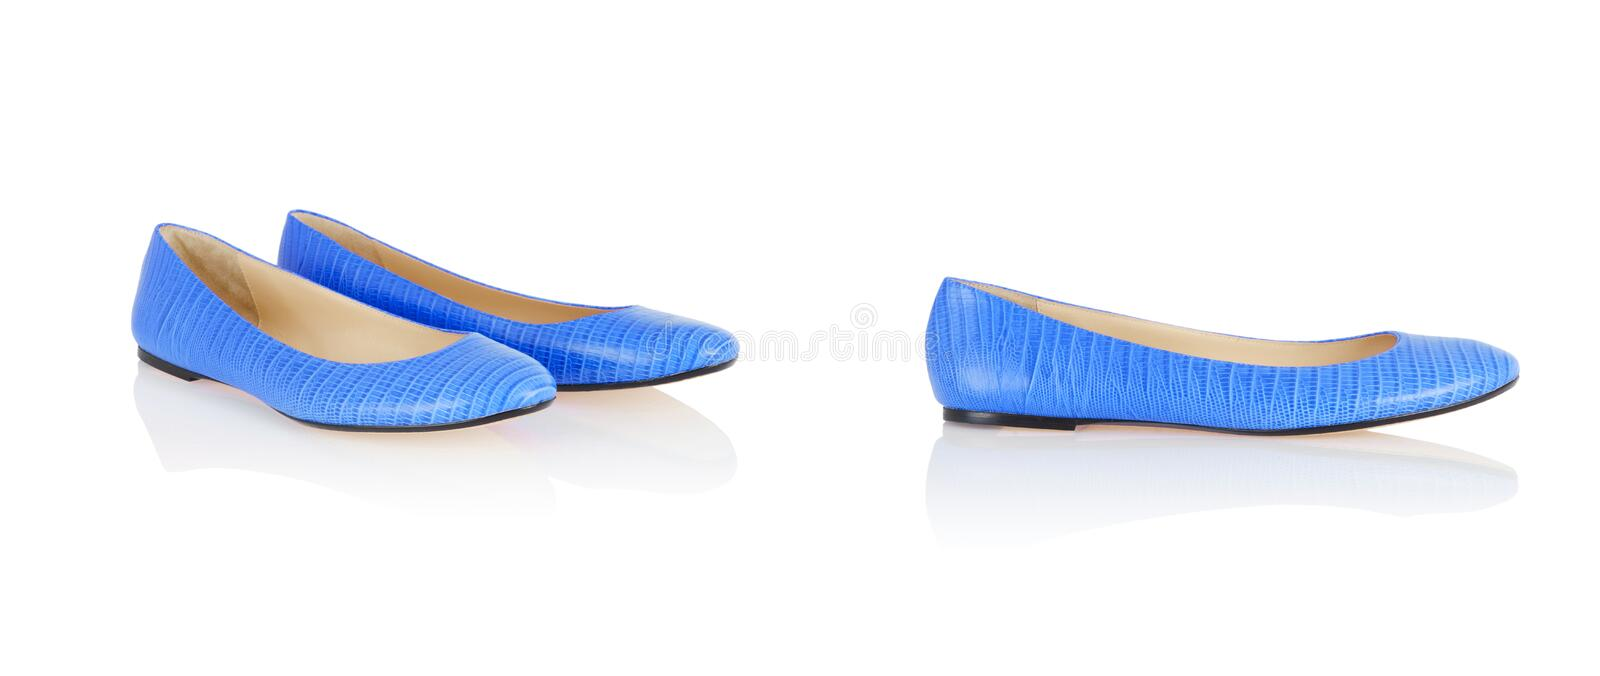 Download Ballet shoes stock photo. Image of pointe, navy, fashion - 36986806